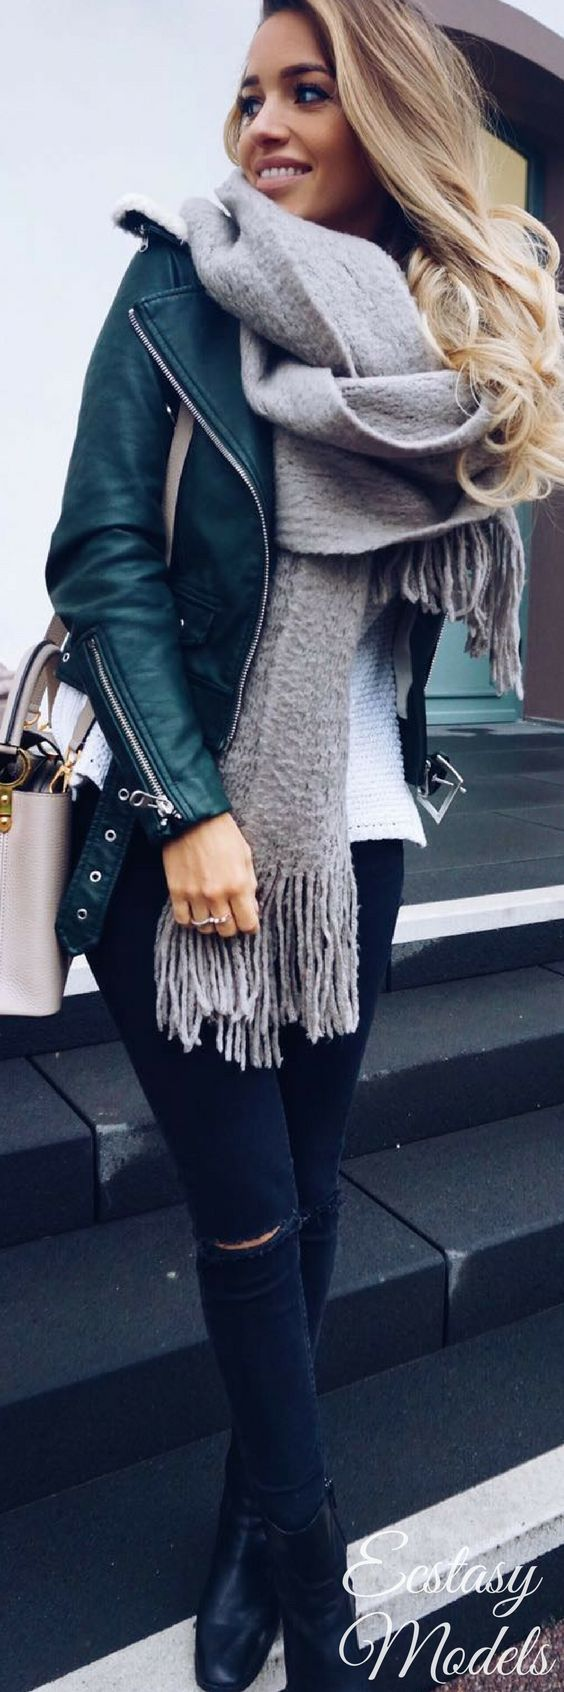 Winter Style // Chunky winter outfit idea.